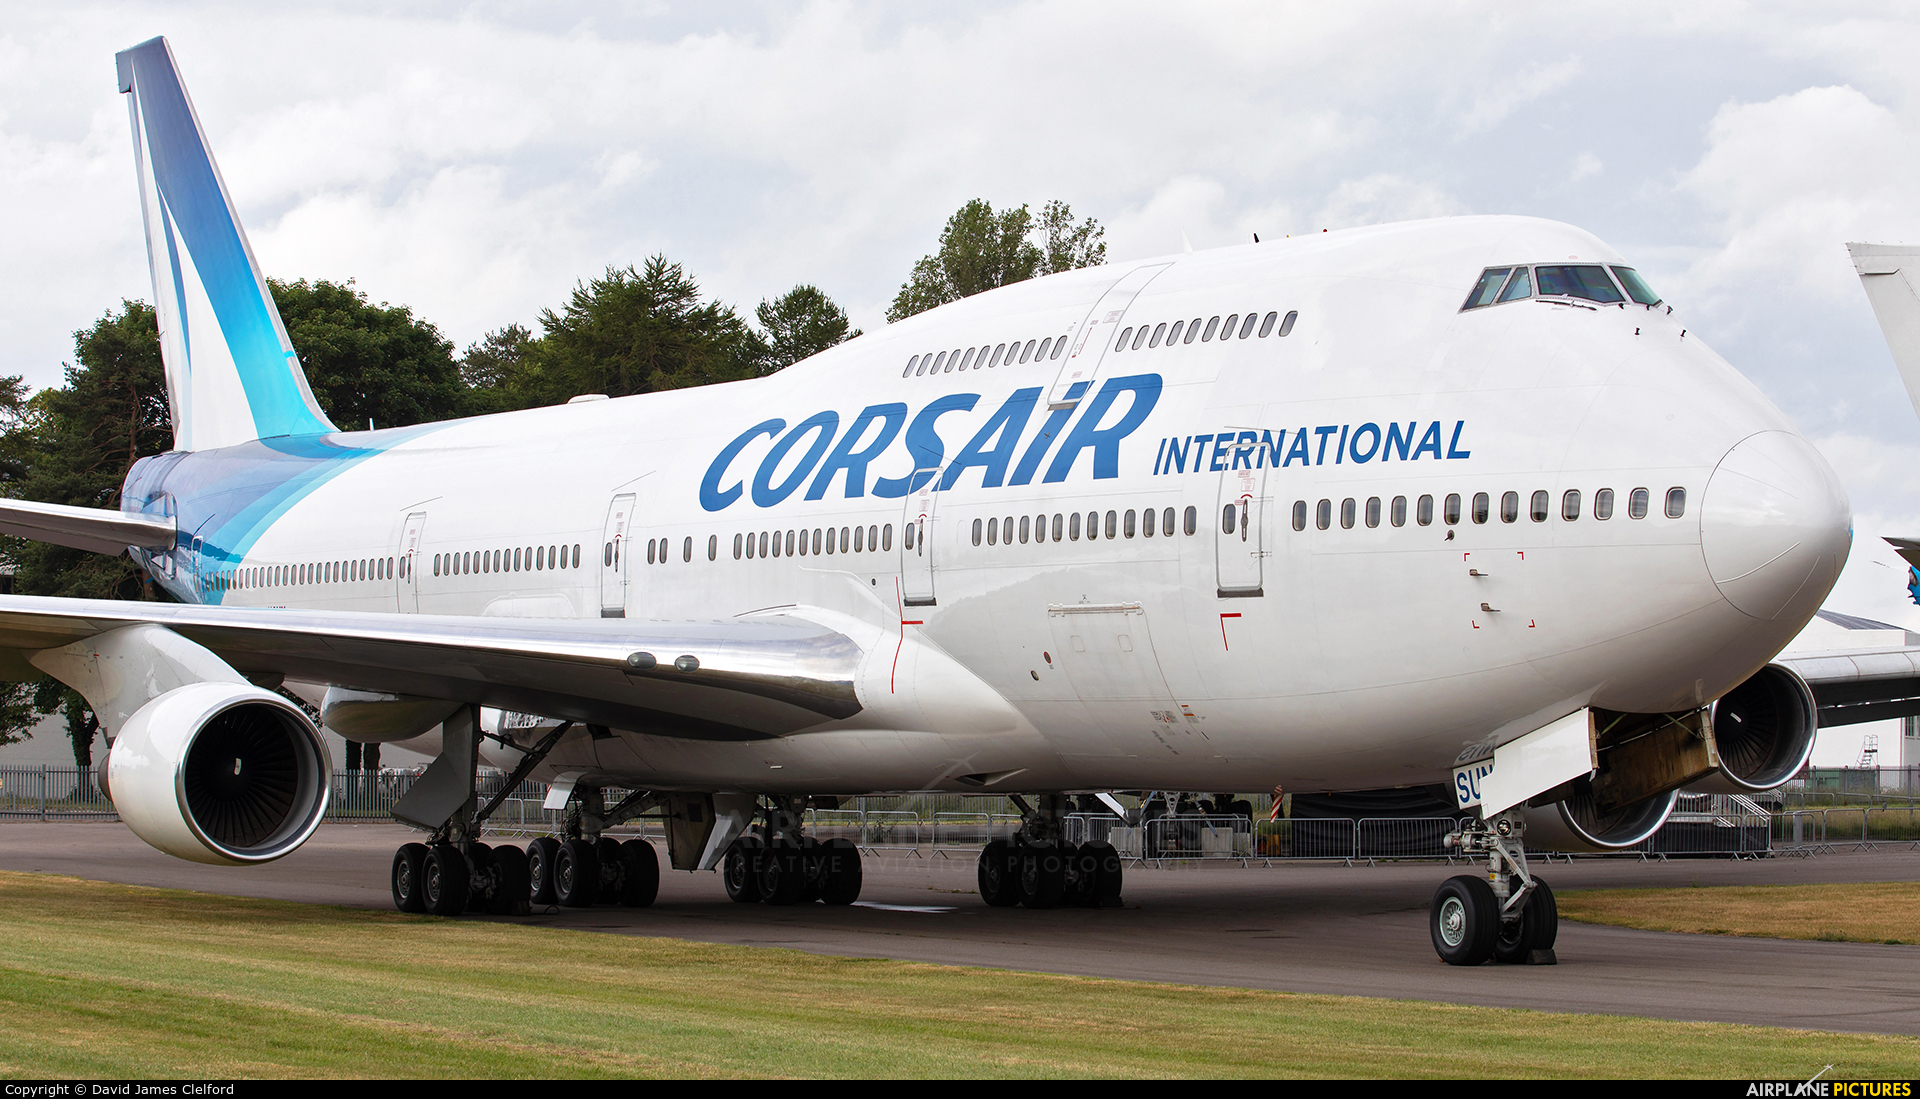 Corsair / Corsair Intl F-HSUN aircraft at Kemble